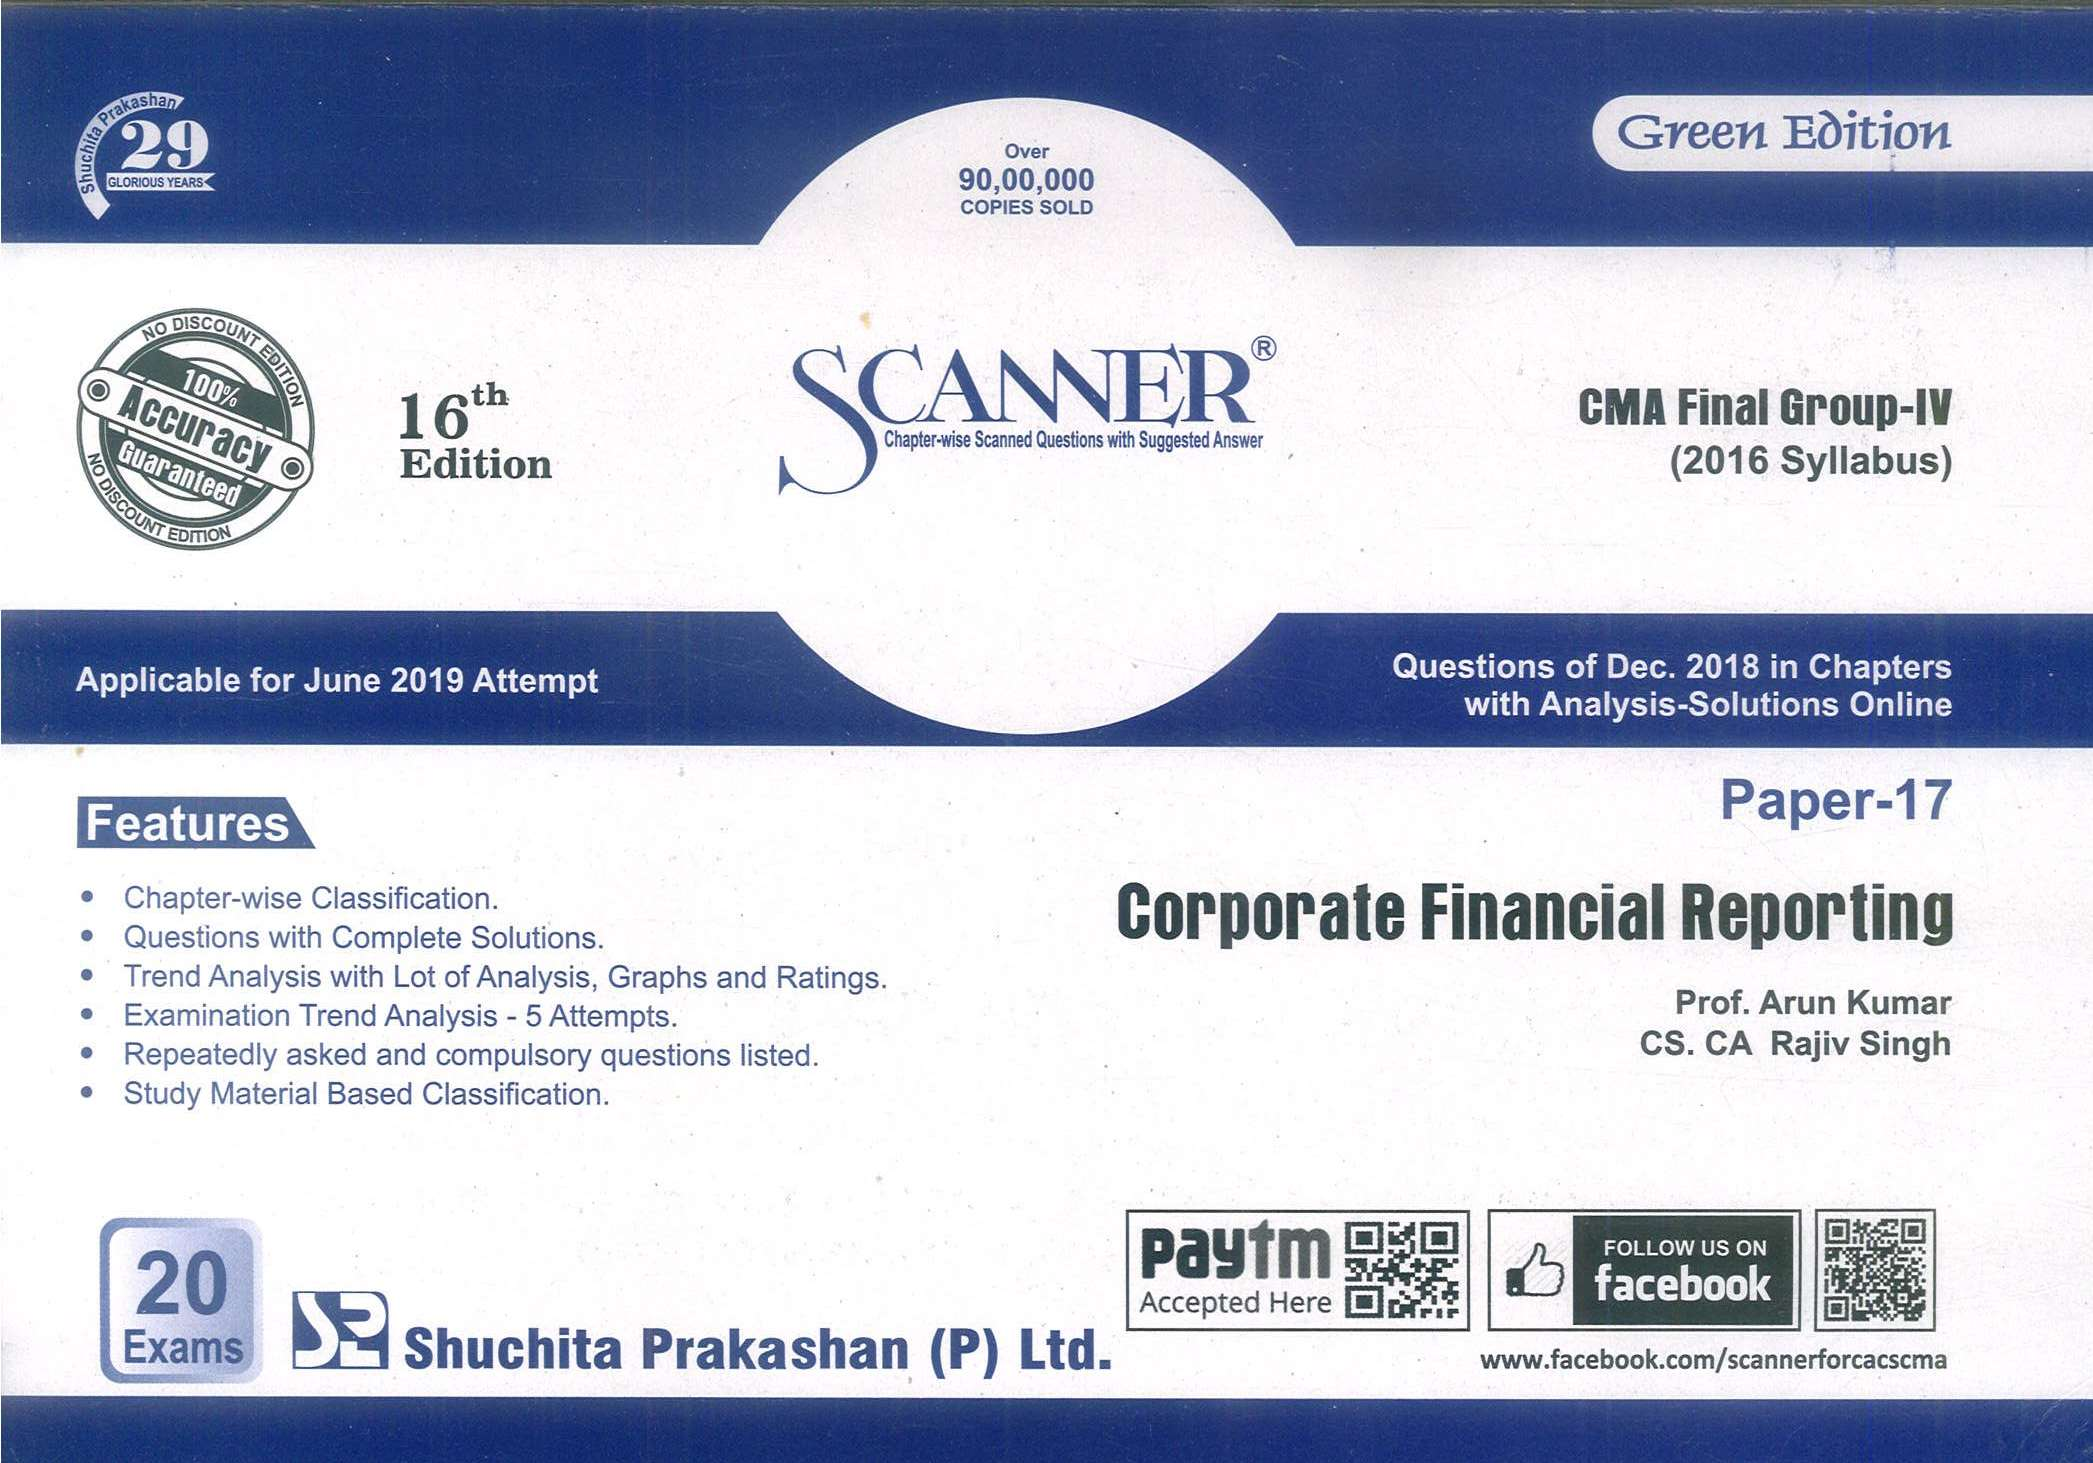 Shuchita Solved Scanner Corporate Financial Reporting New Syllabus By Arun Kumar, Rajiv Singh Applicable For June 2019 Exams (Shuchita Prakashan) 16th Edition 2019